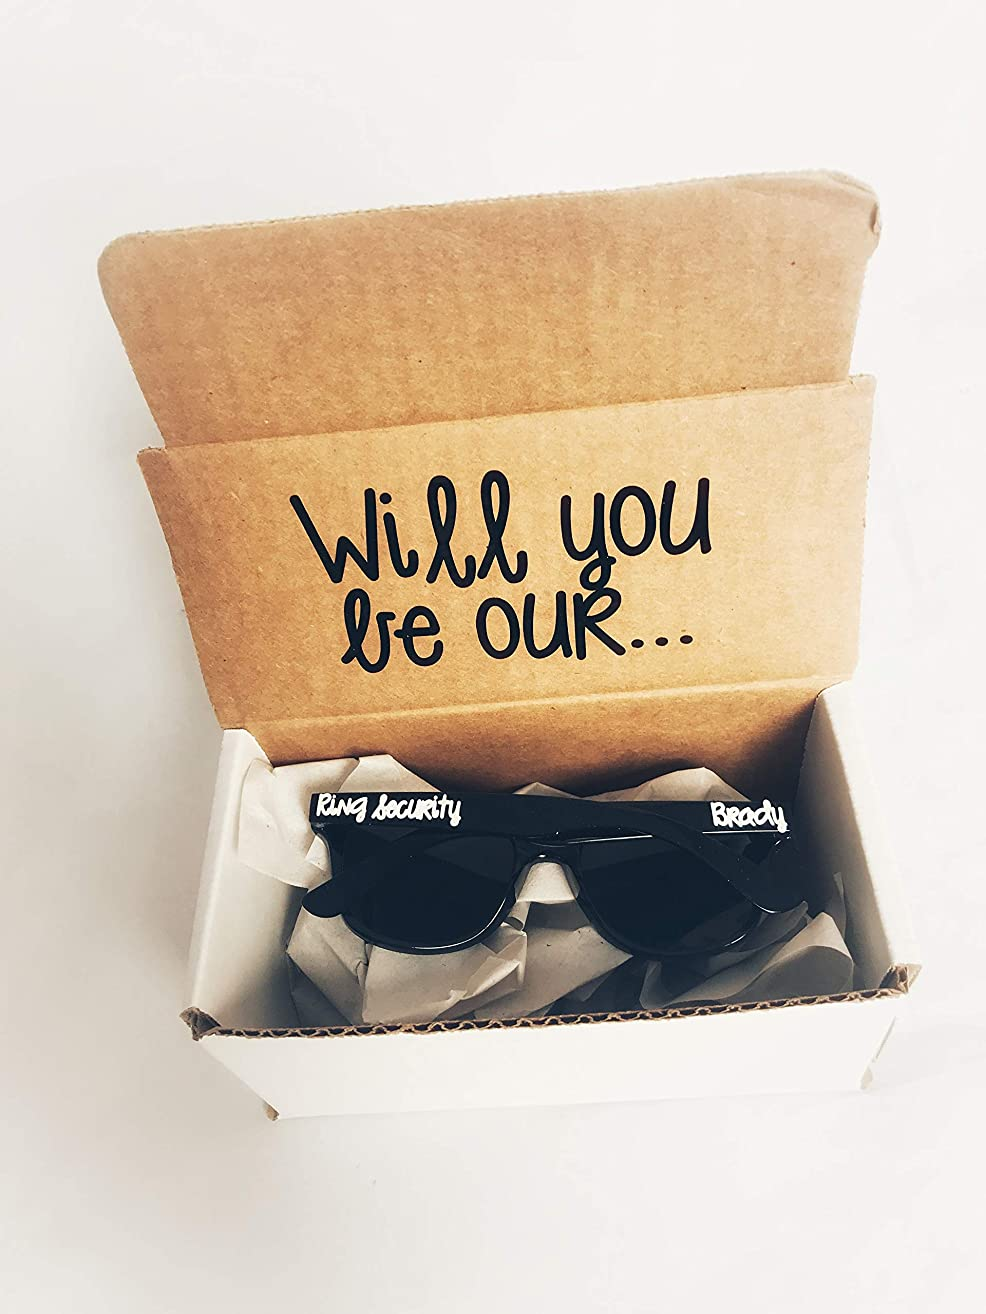 Ring Security Sunglasses | Boy Ring Bearer Proposal Gift | Wedding Party Glasses | Bridal Present